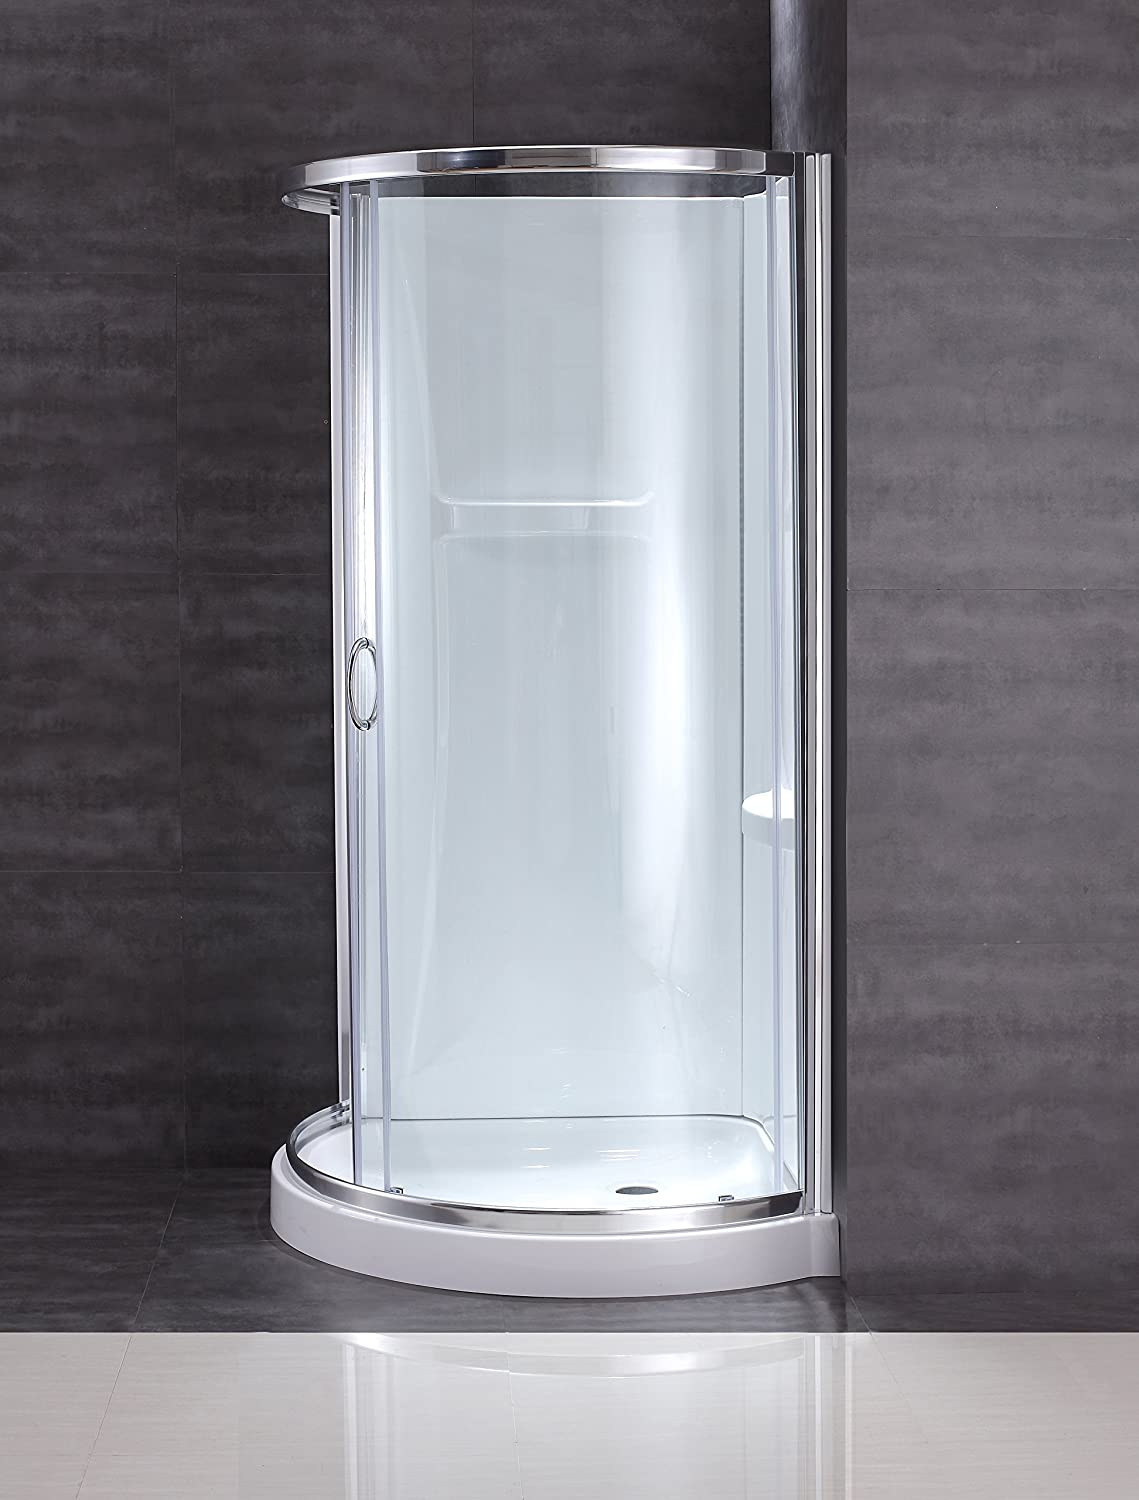 97ac55399be Ove Decors Breeze 31 withwalls Premium 31-Inch Shower Kit with Acrylic Base  and Walls and Clear Glass Sliding Door - Shower Installation Kits -  Amazon.com